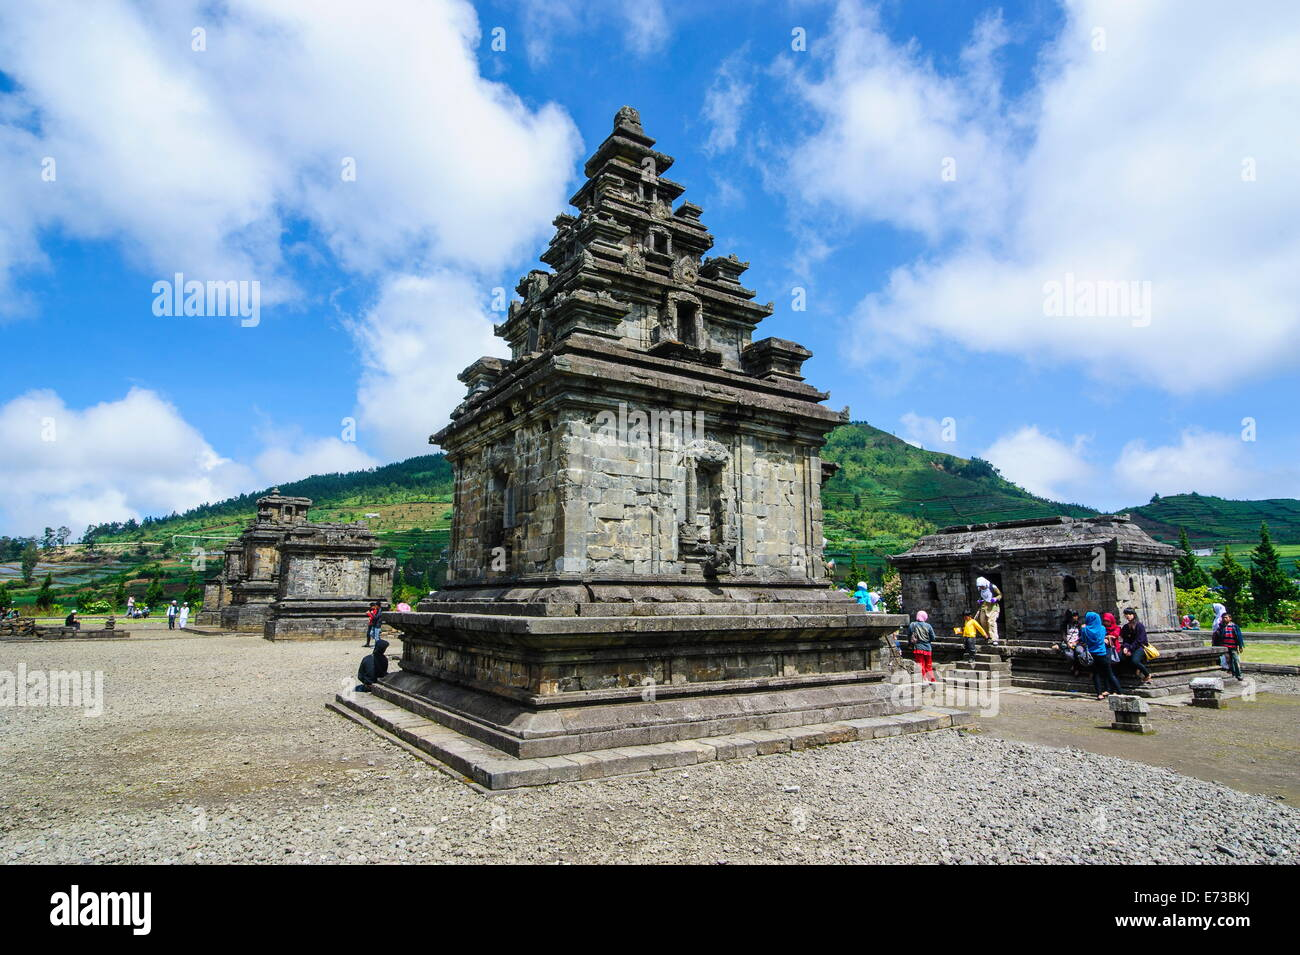 Arjuna Hindu Dieng temple complex, Dieng Plateau, Java, Indonesia, Southeast Asia, Asia - Stock Image